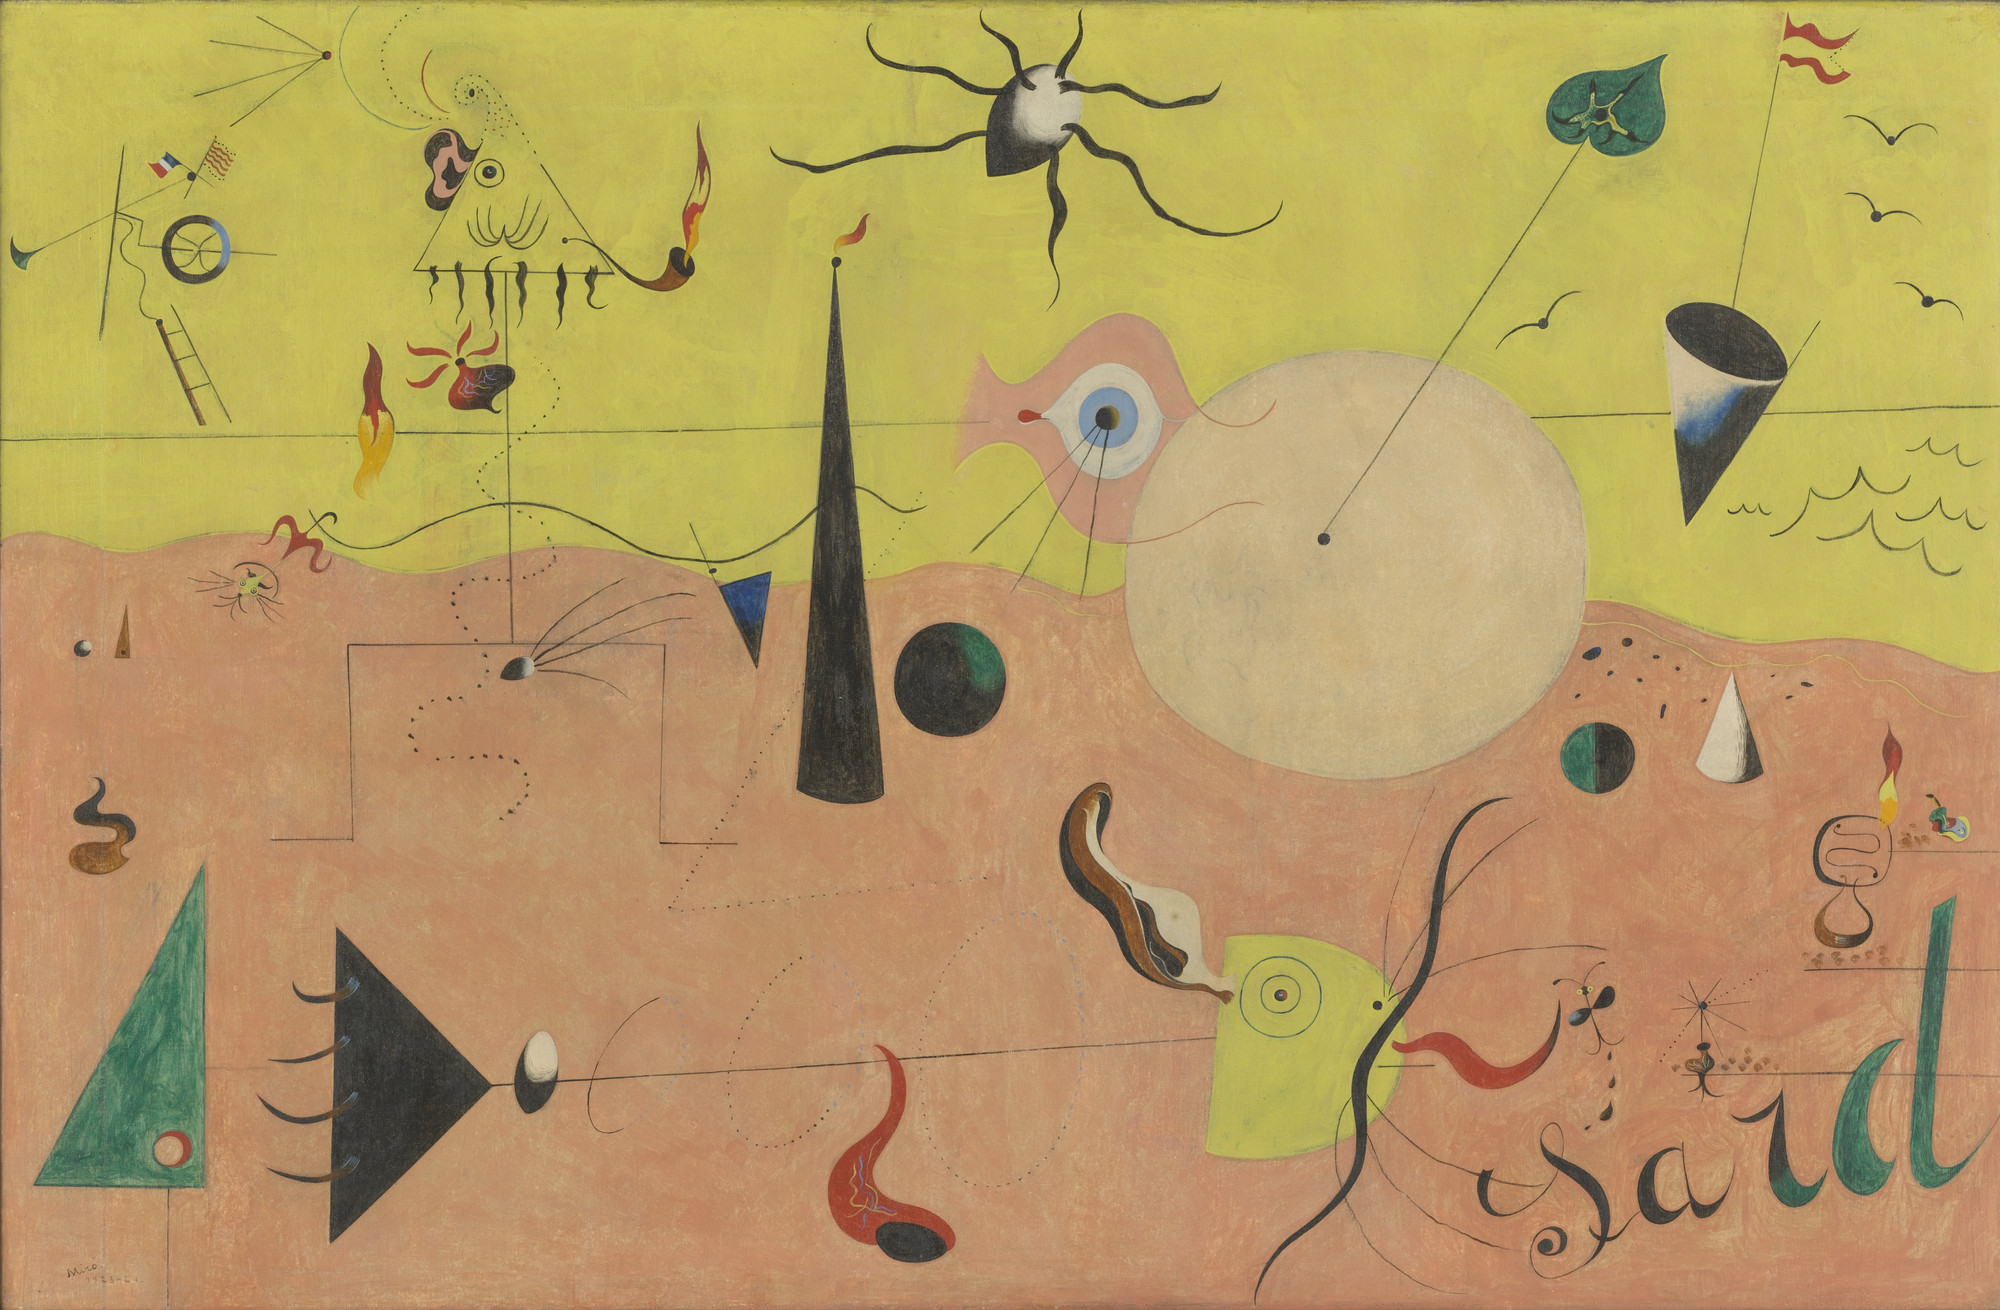 Joan Miró. The Hunter (Catalan Landscape). Montroig, July 1923-winter 1924